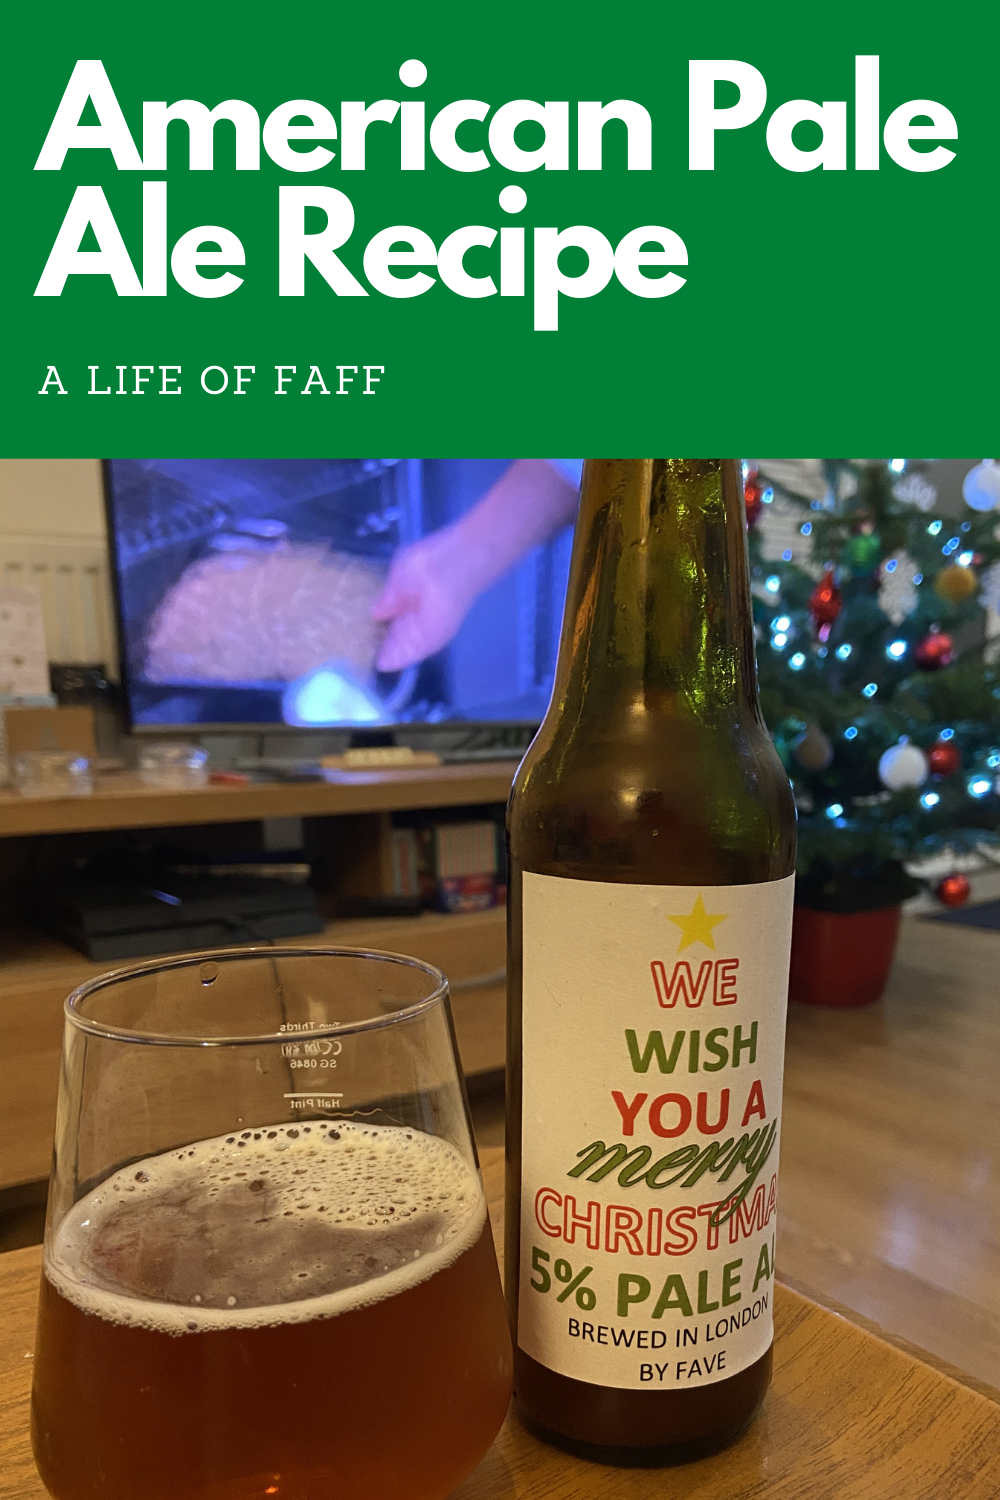 We wish you a Merry Christmas 5% pale ale Pin 2 for Pinterest